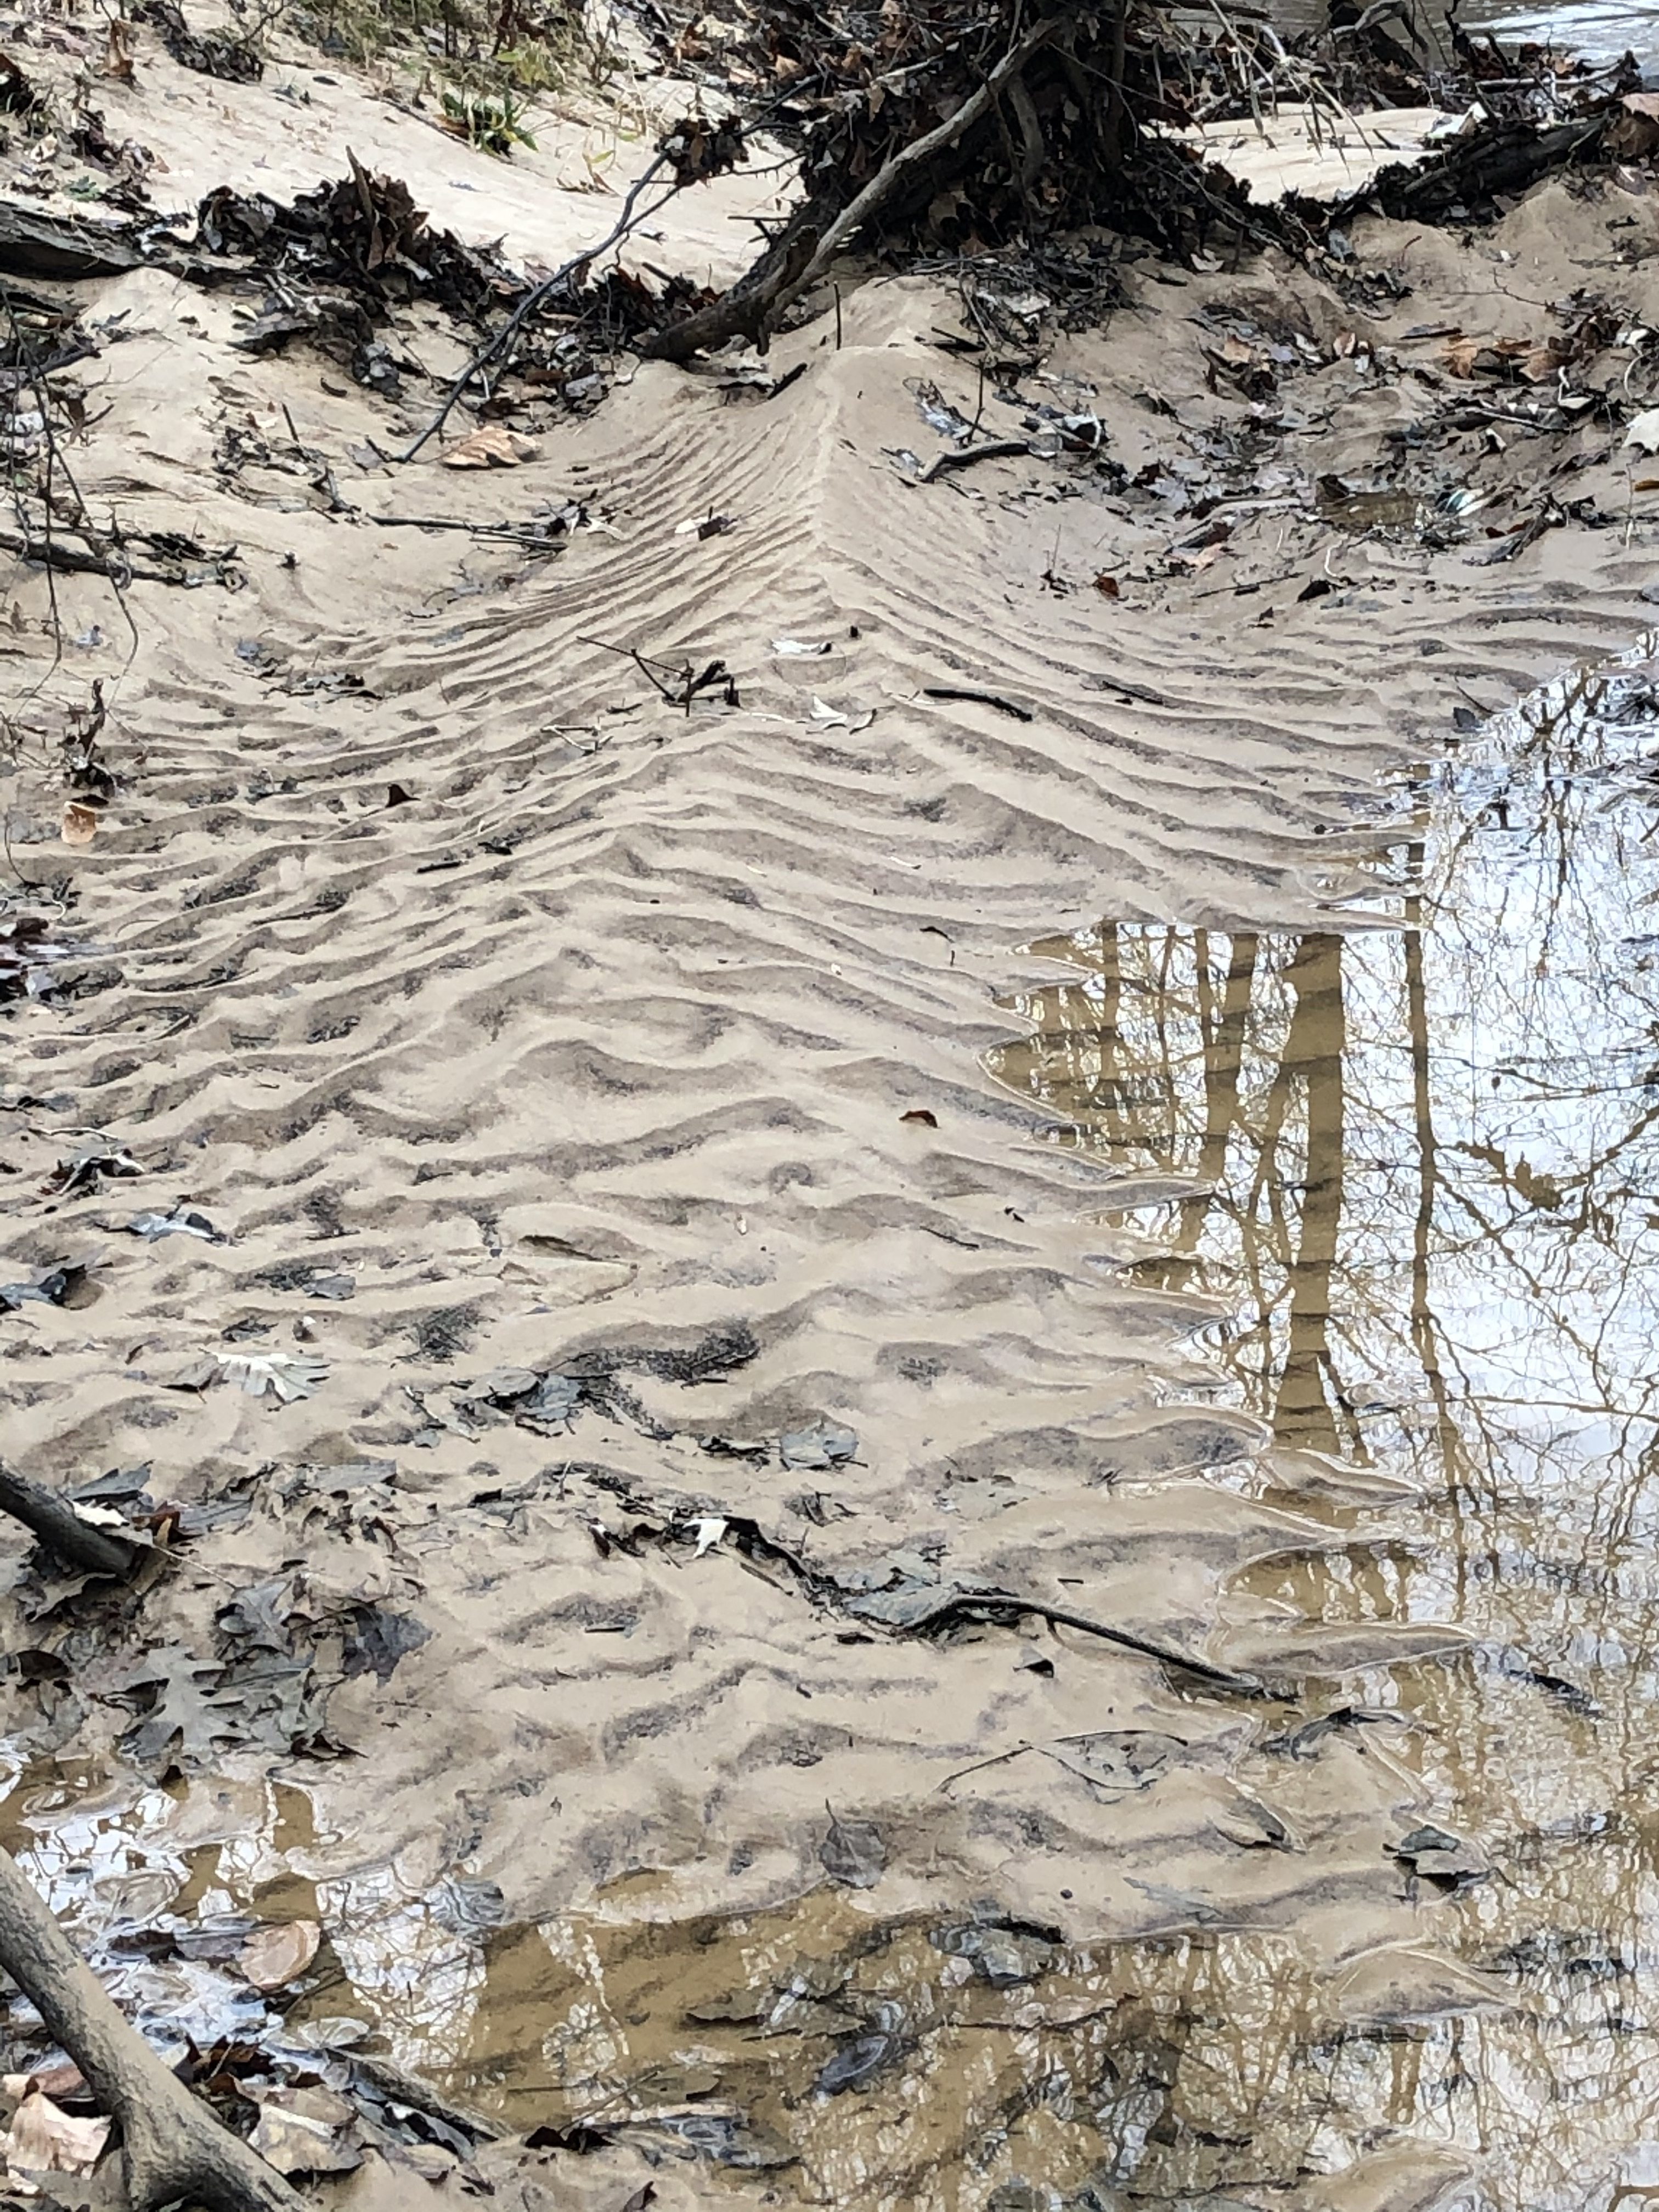 Ripples in the Sand